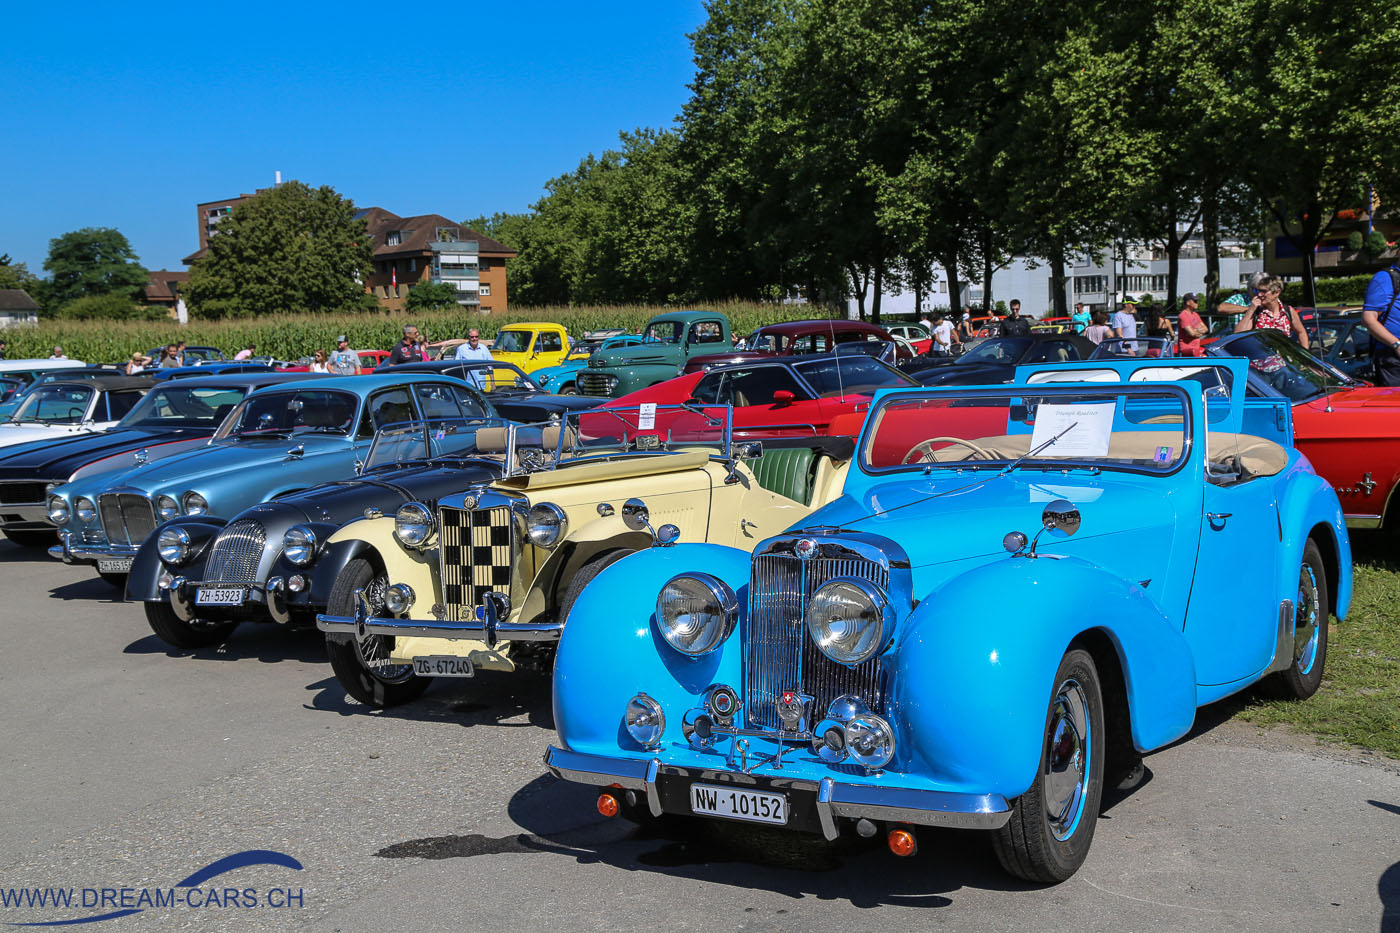 OSMT - Oldtimer Sunday Morning Treffen August 2016 auf dem Stierenmarkt Areal in Zug